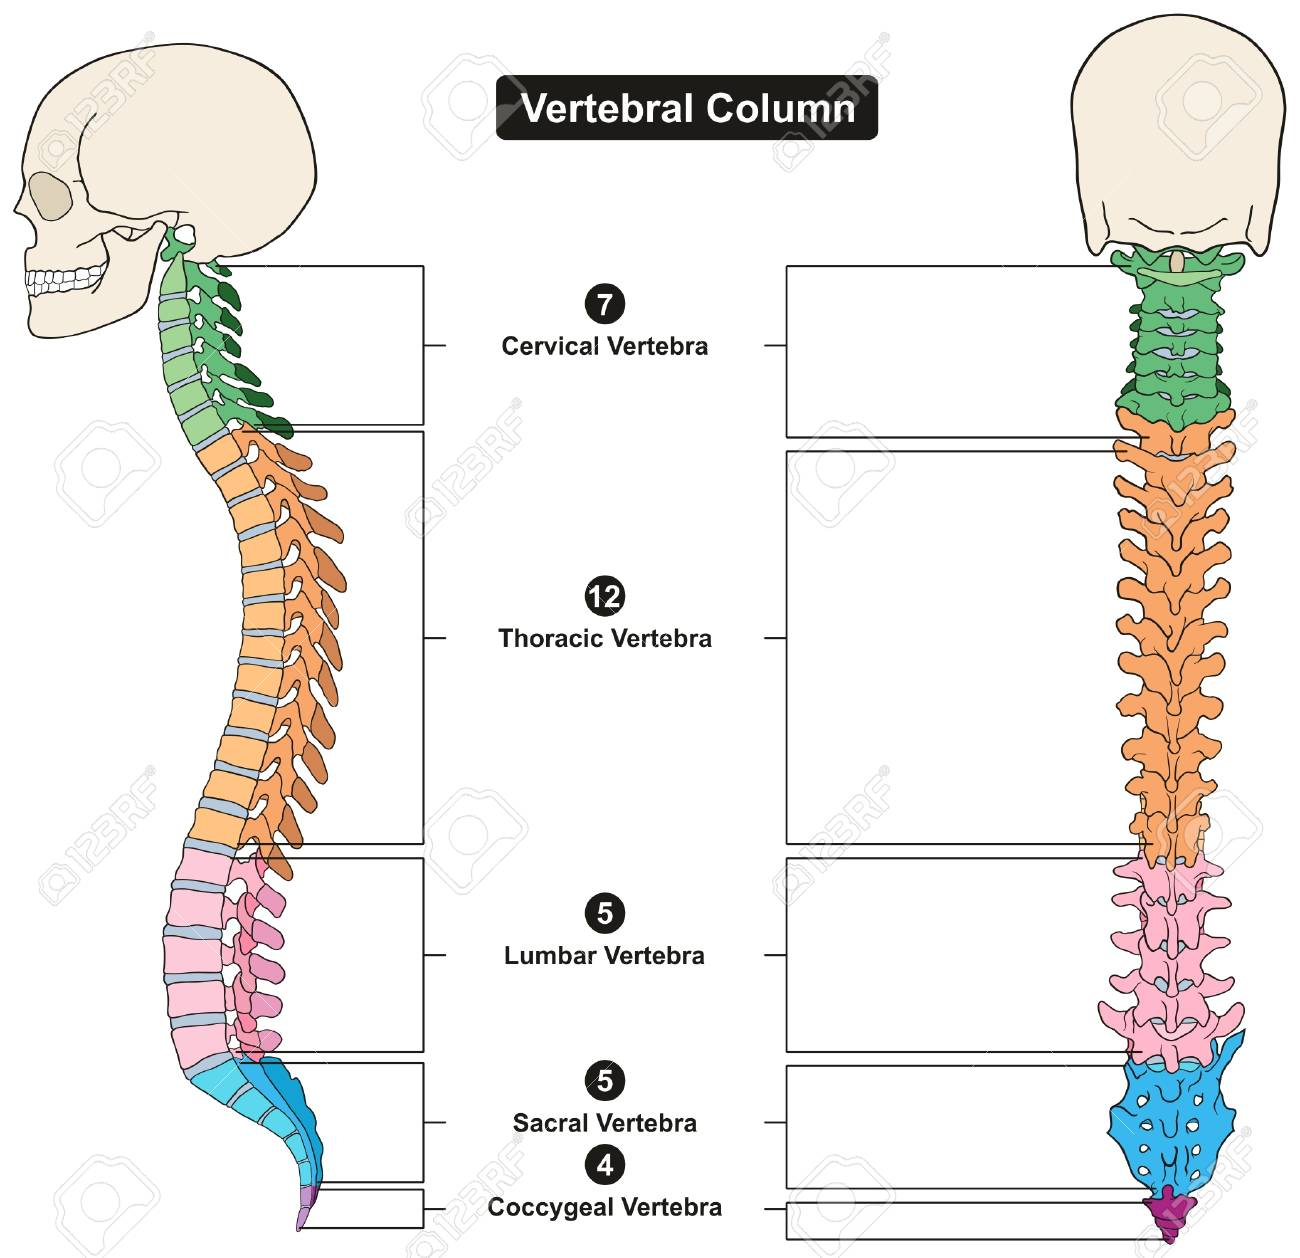 Vertebral Column Of Human Body Anatomy Infograpic Diagram Including ...